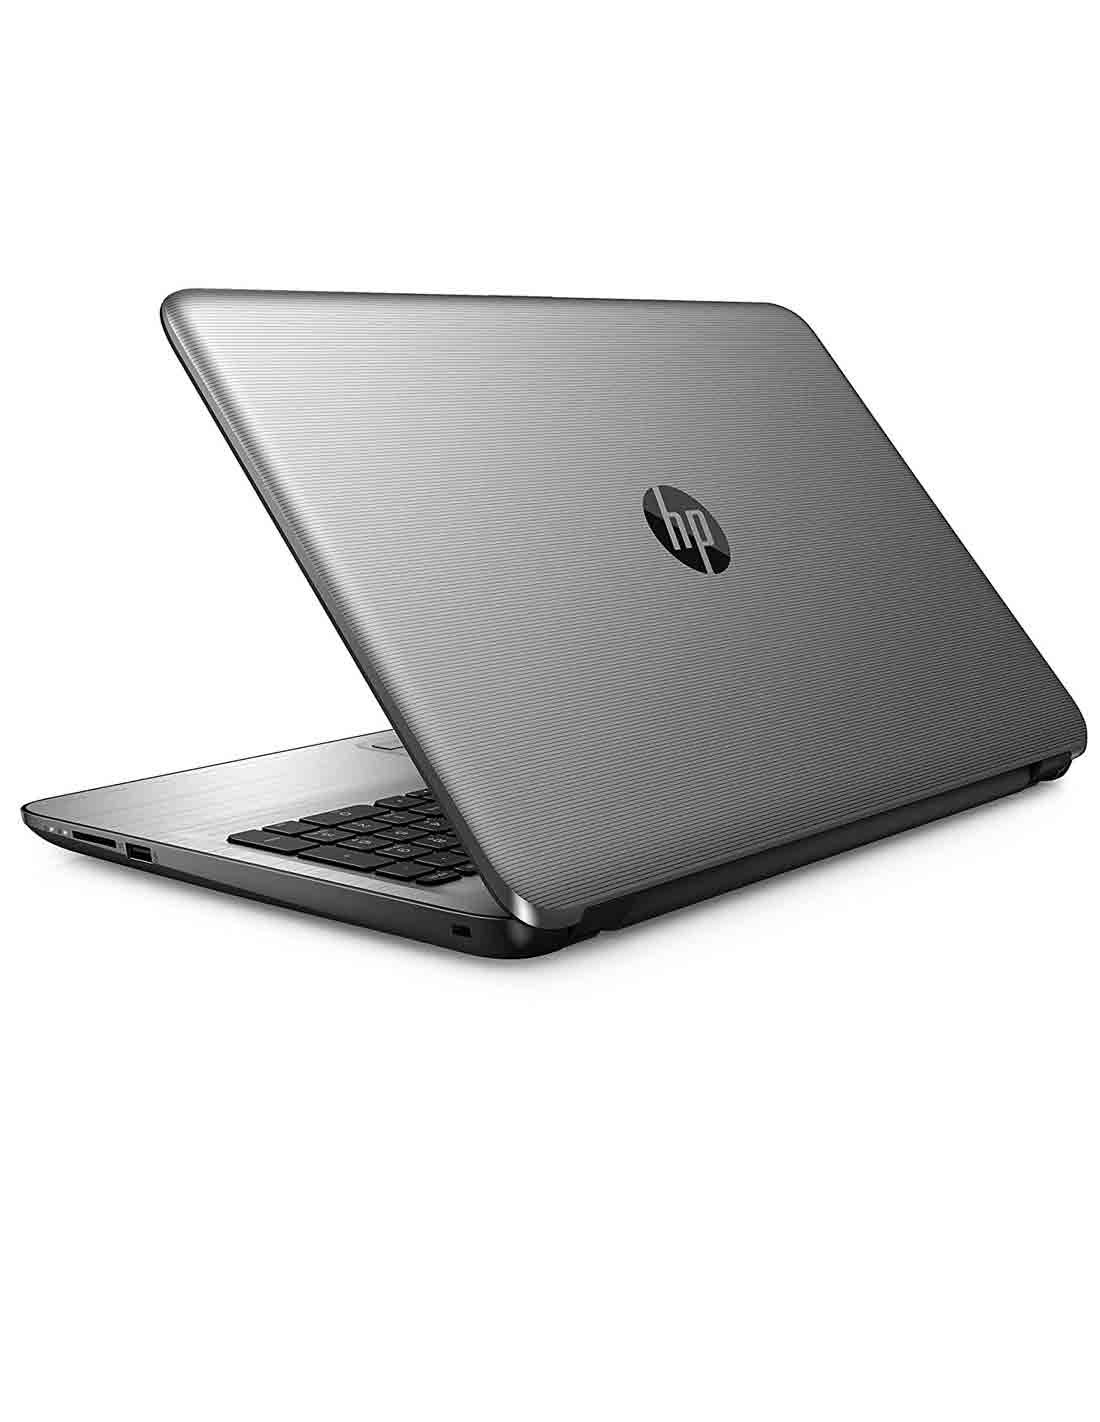 HP Notebook 15-ay100ne Intel Core i7 Windows 10 in Dubai Online Store at a Cheap Price